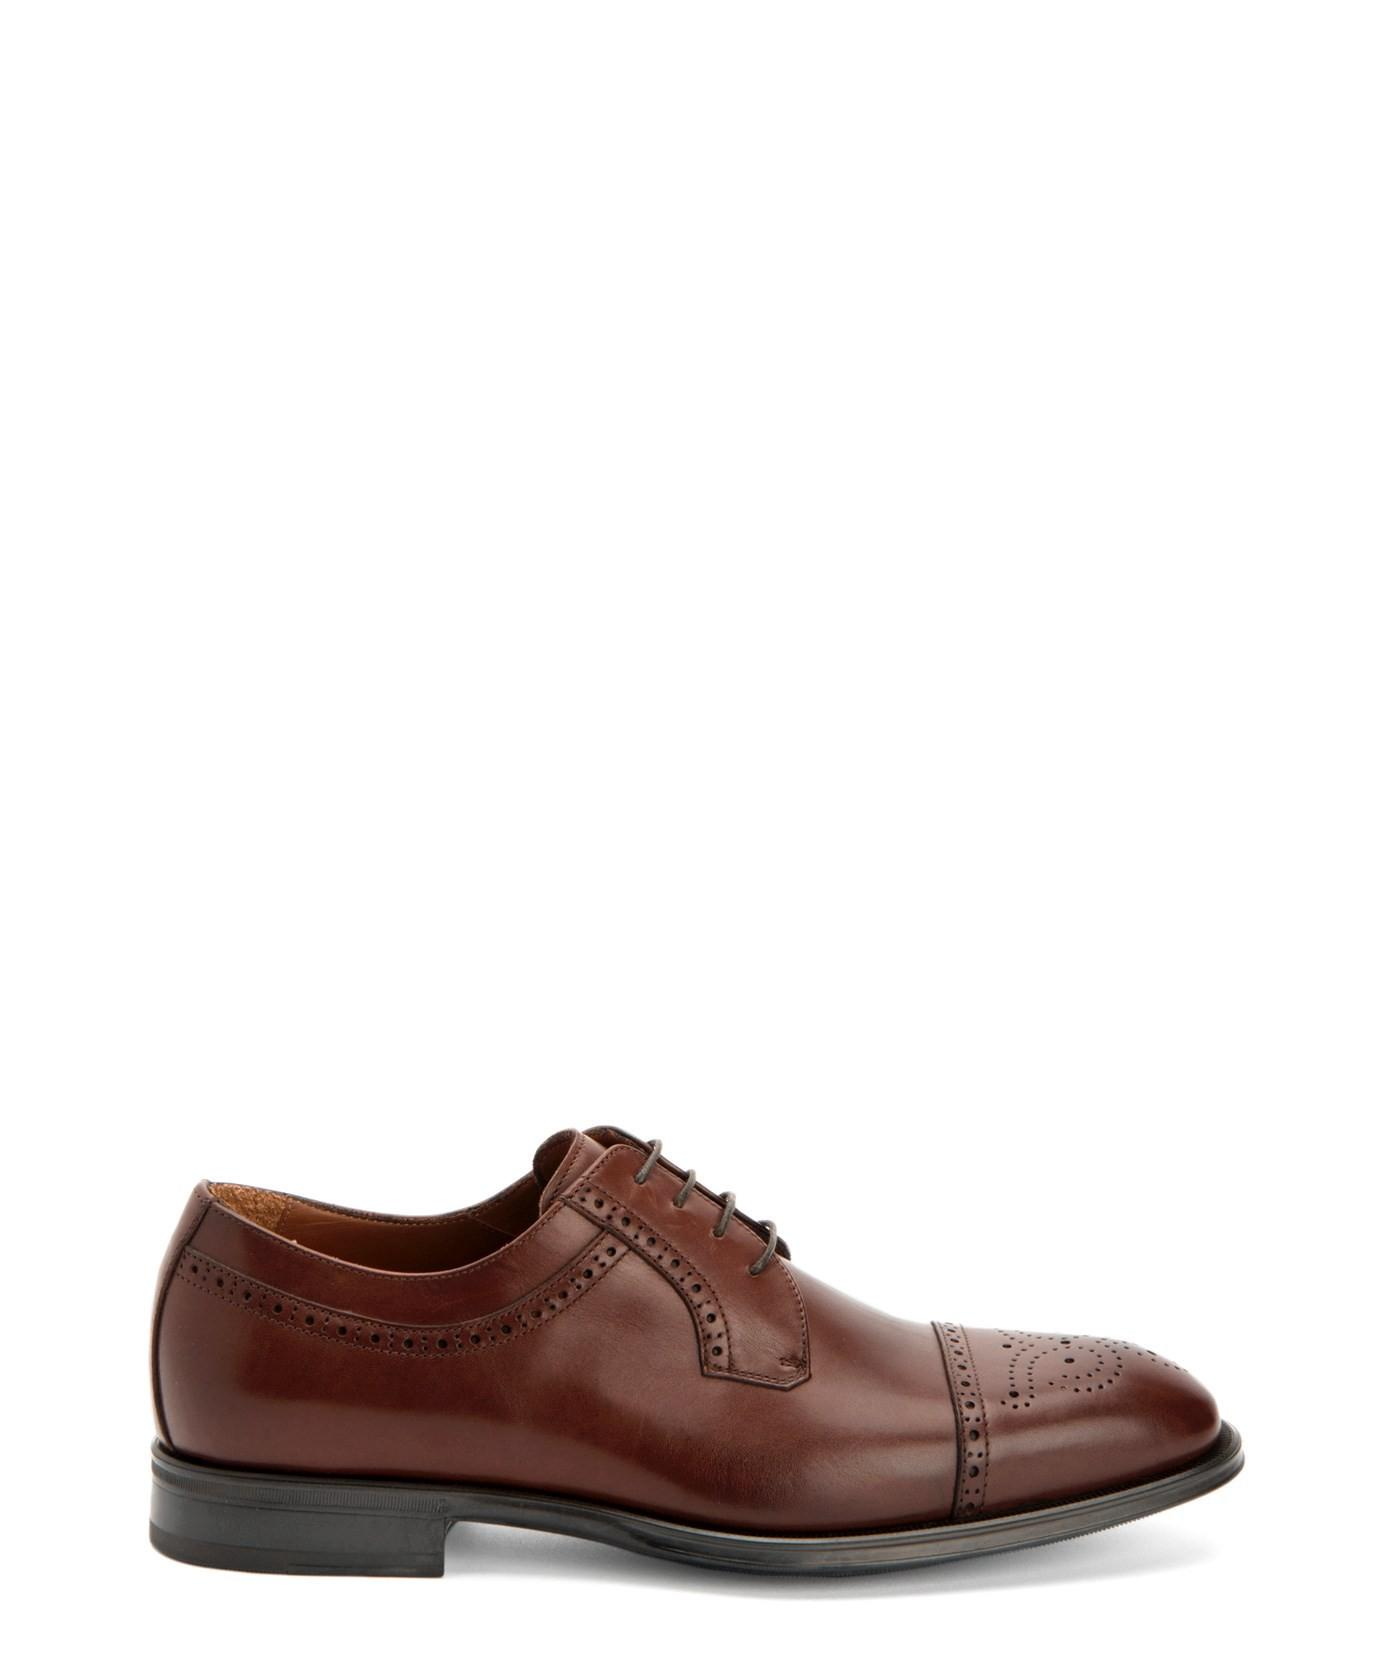 Aquatalia Duke Leather Derbys In Burnished